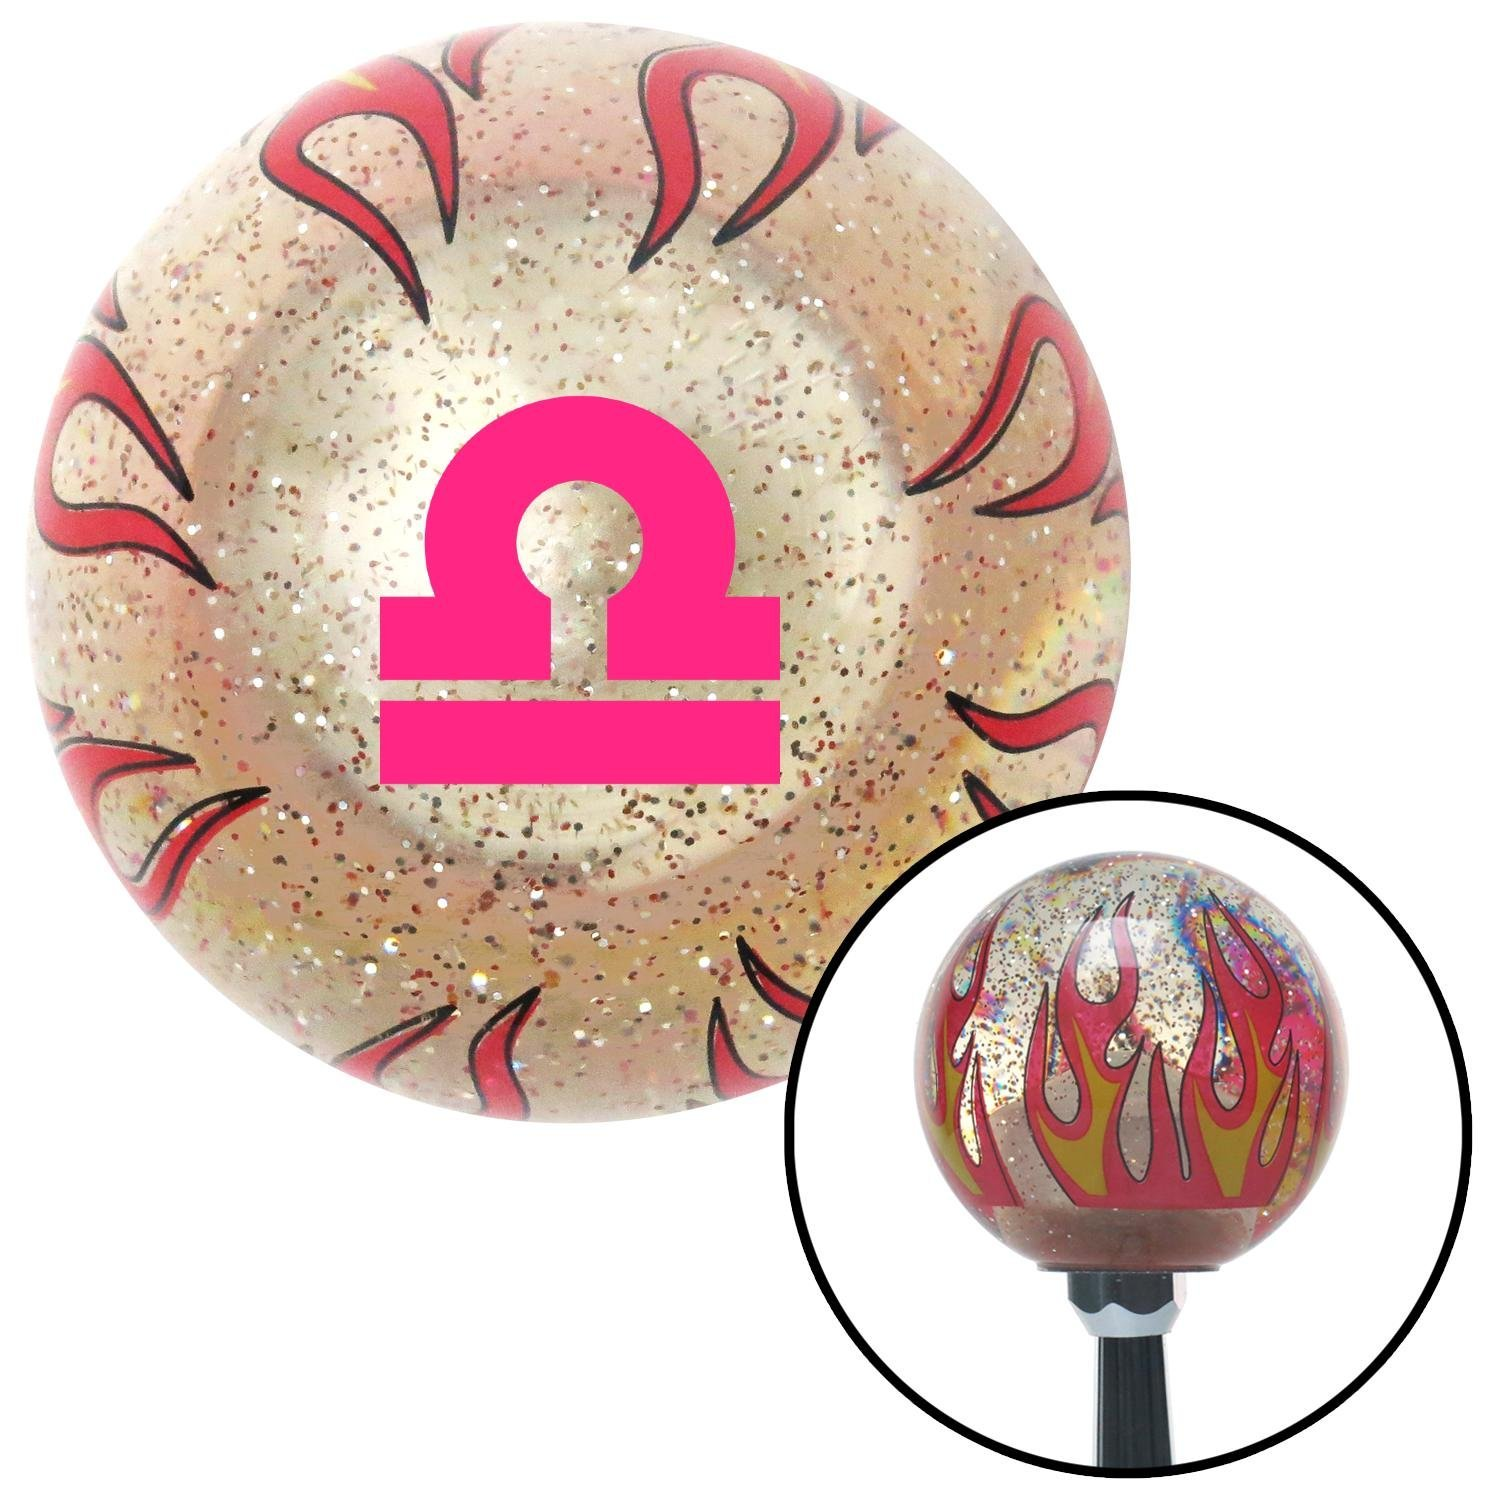 American Shifter 295641 Shift Knob Pink Libra Clear Flame Metal Flake with M16 x 1.5 Insert